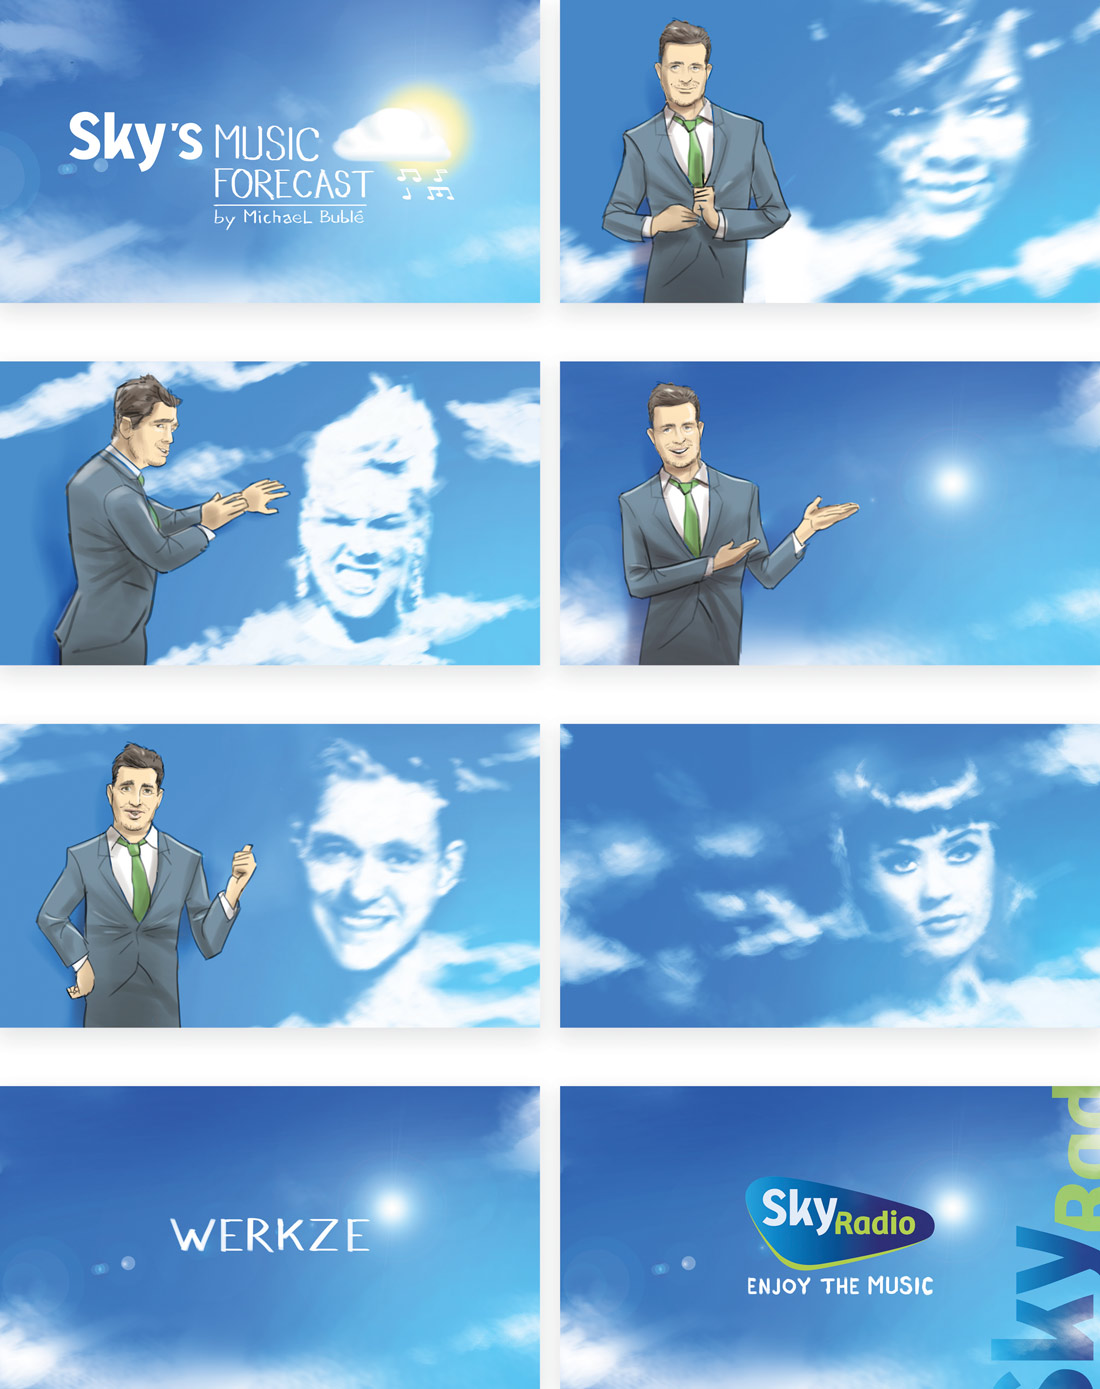 Storyboard illustration for Sky radio with Michael Buble as weatherman